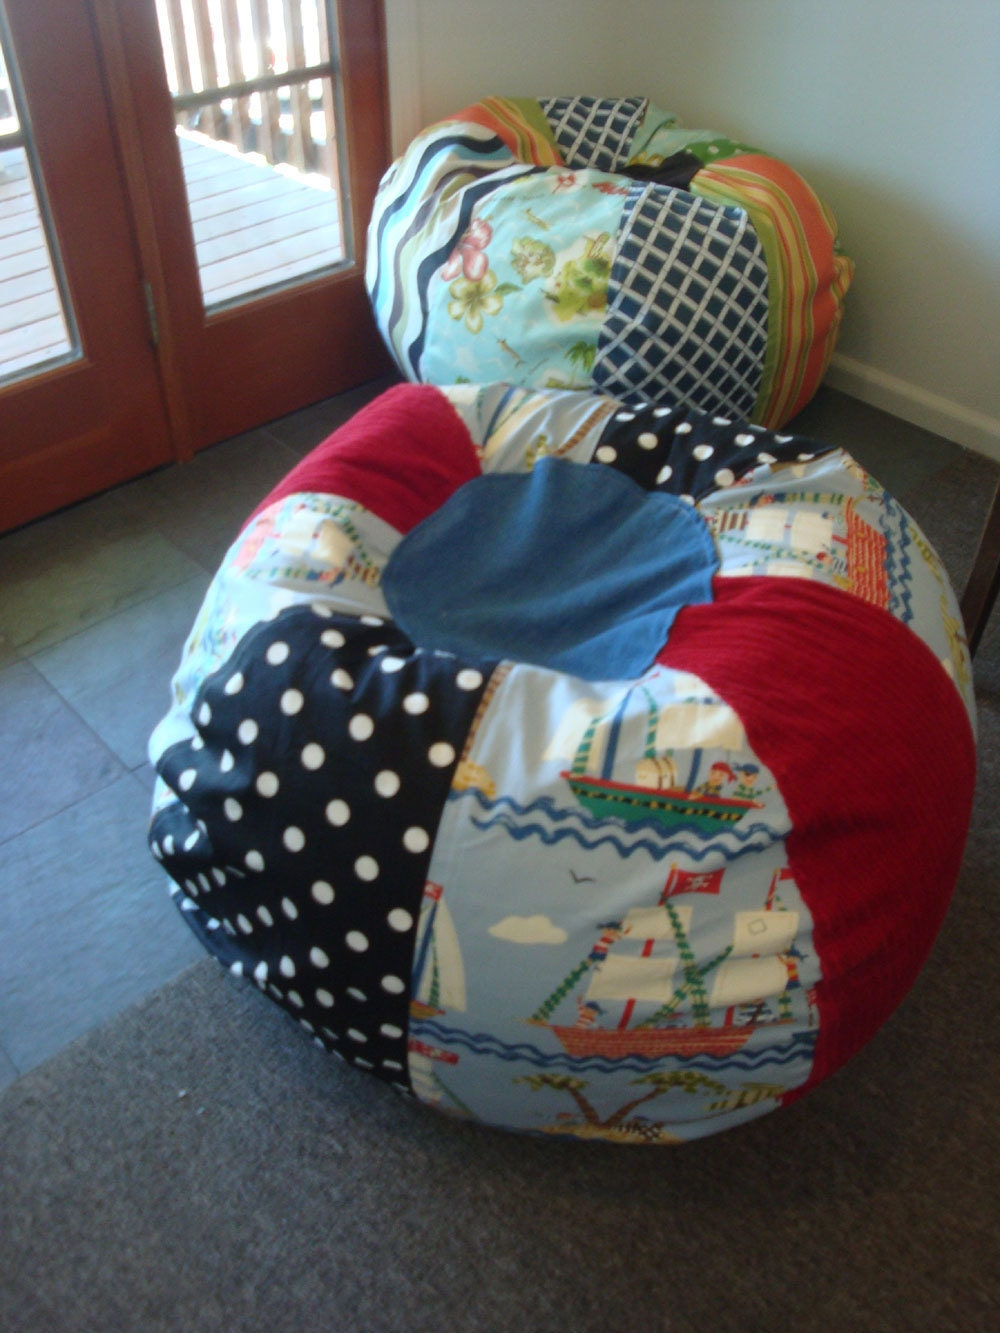 FUN Children's Pirate Bean Bag Chair